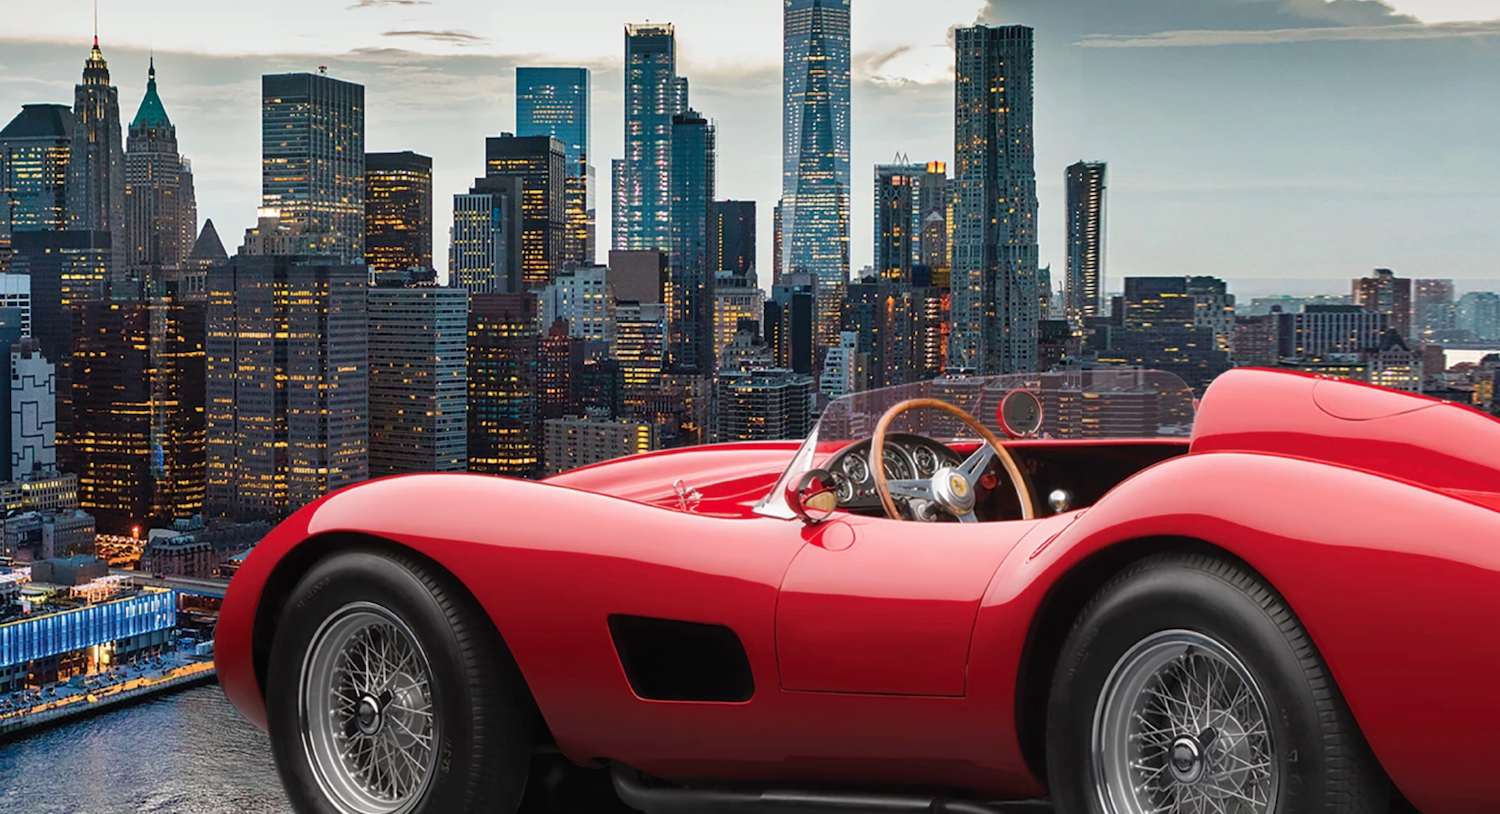 The NYC Concours